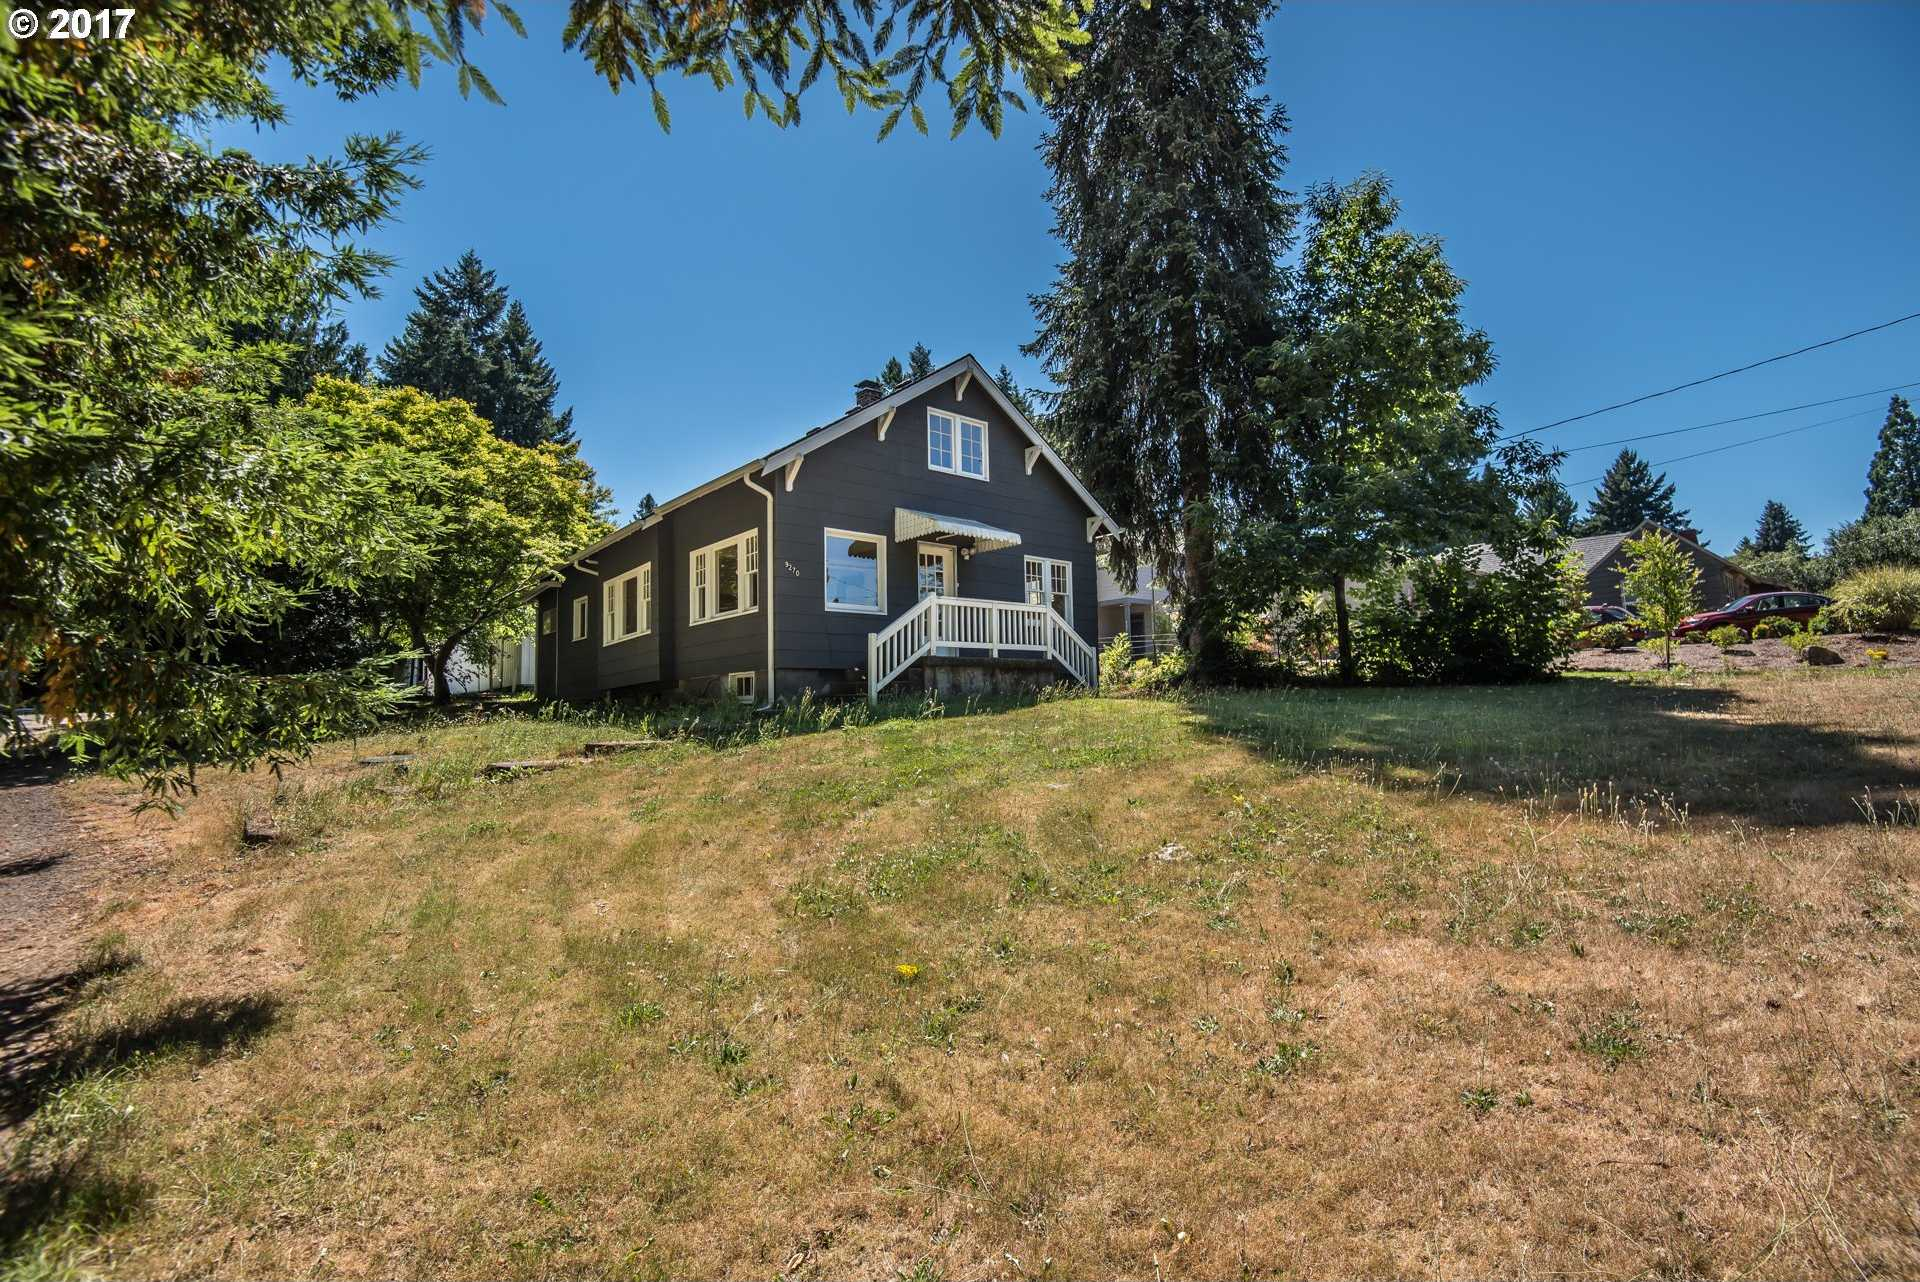 $799,999 - 3Br/2Ba -  for Sale in Edgewood, Tigard